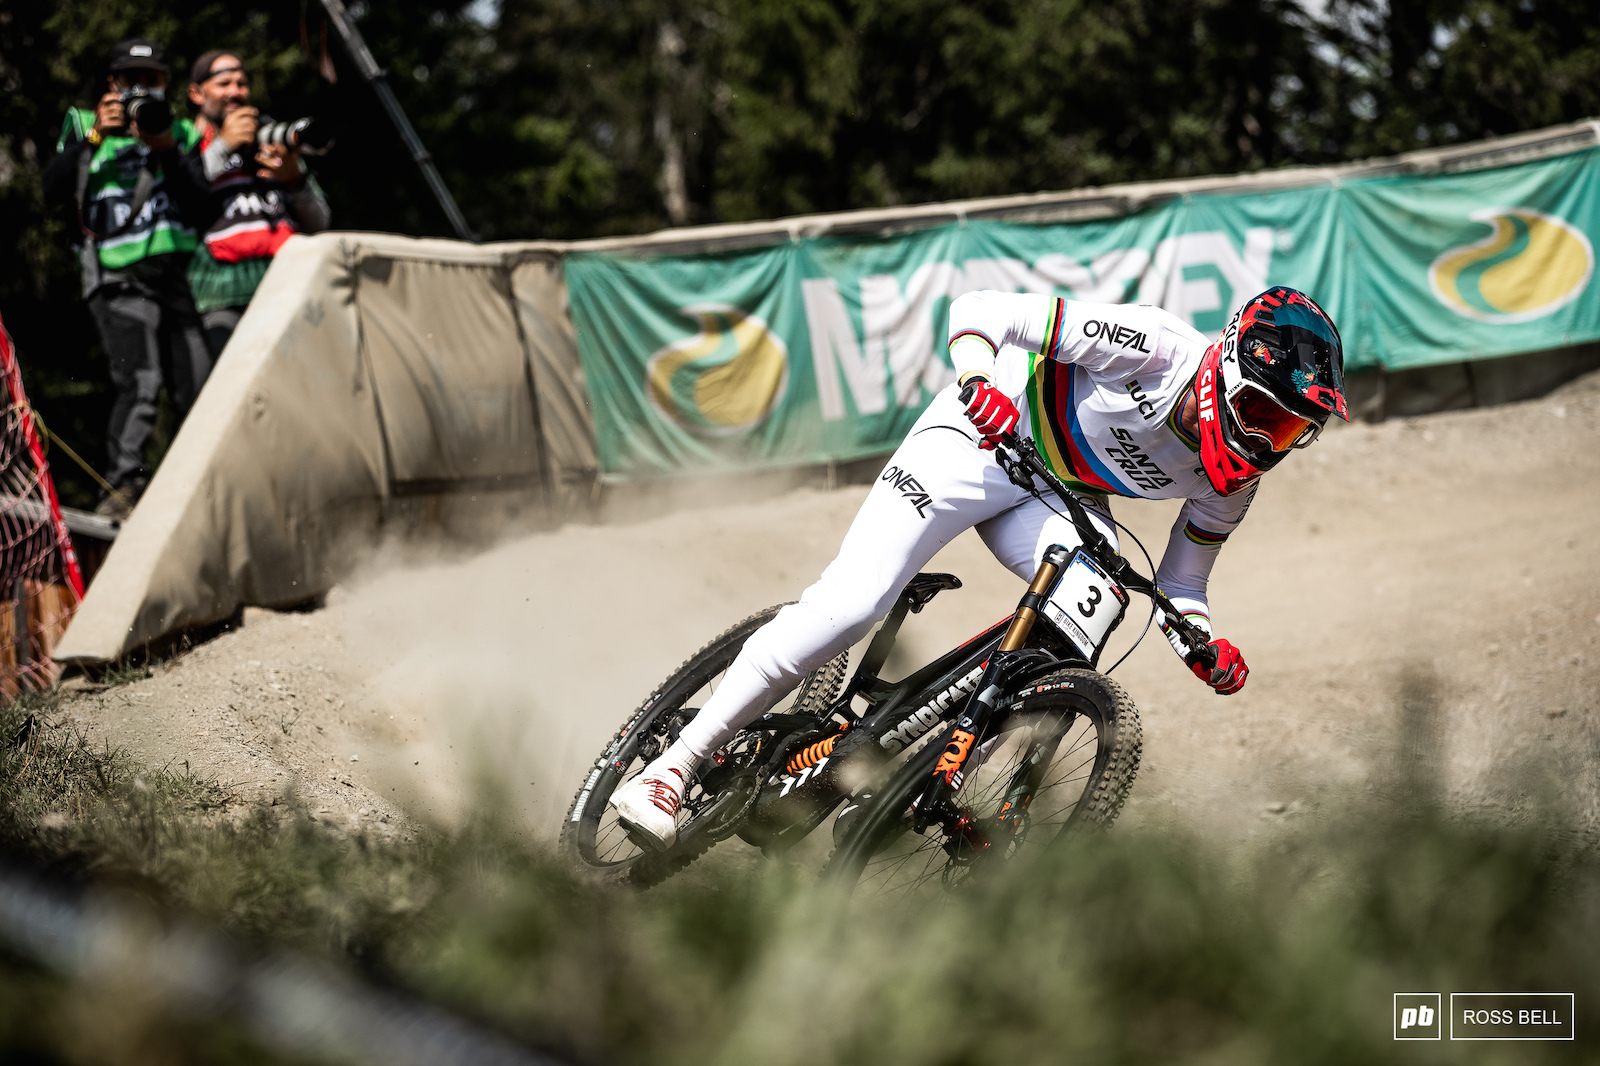 Greg Minnaar gives those fresh rainbow stripes a race run unfortunately it wasn t Greg s day and he ended up 19th.